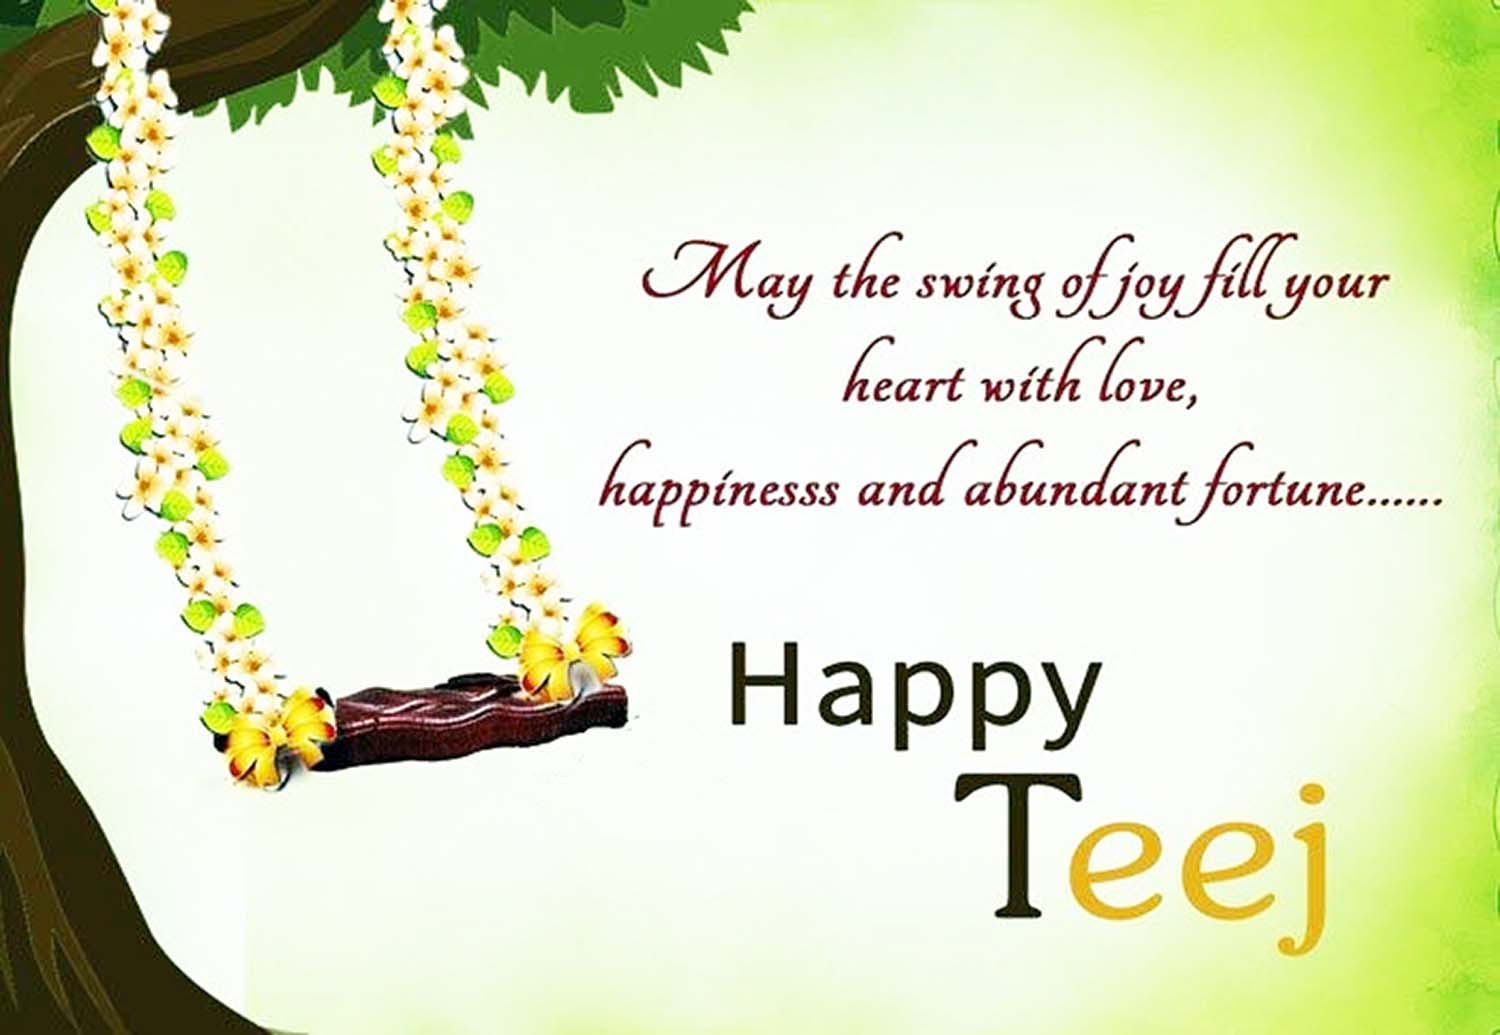 Happy teej wish